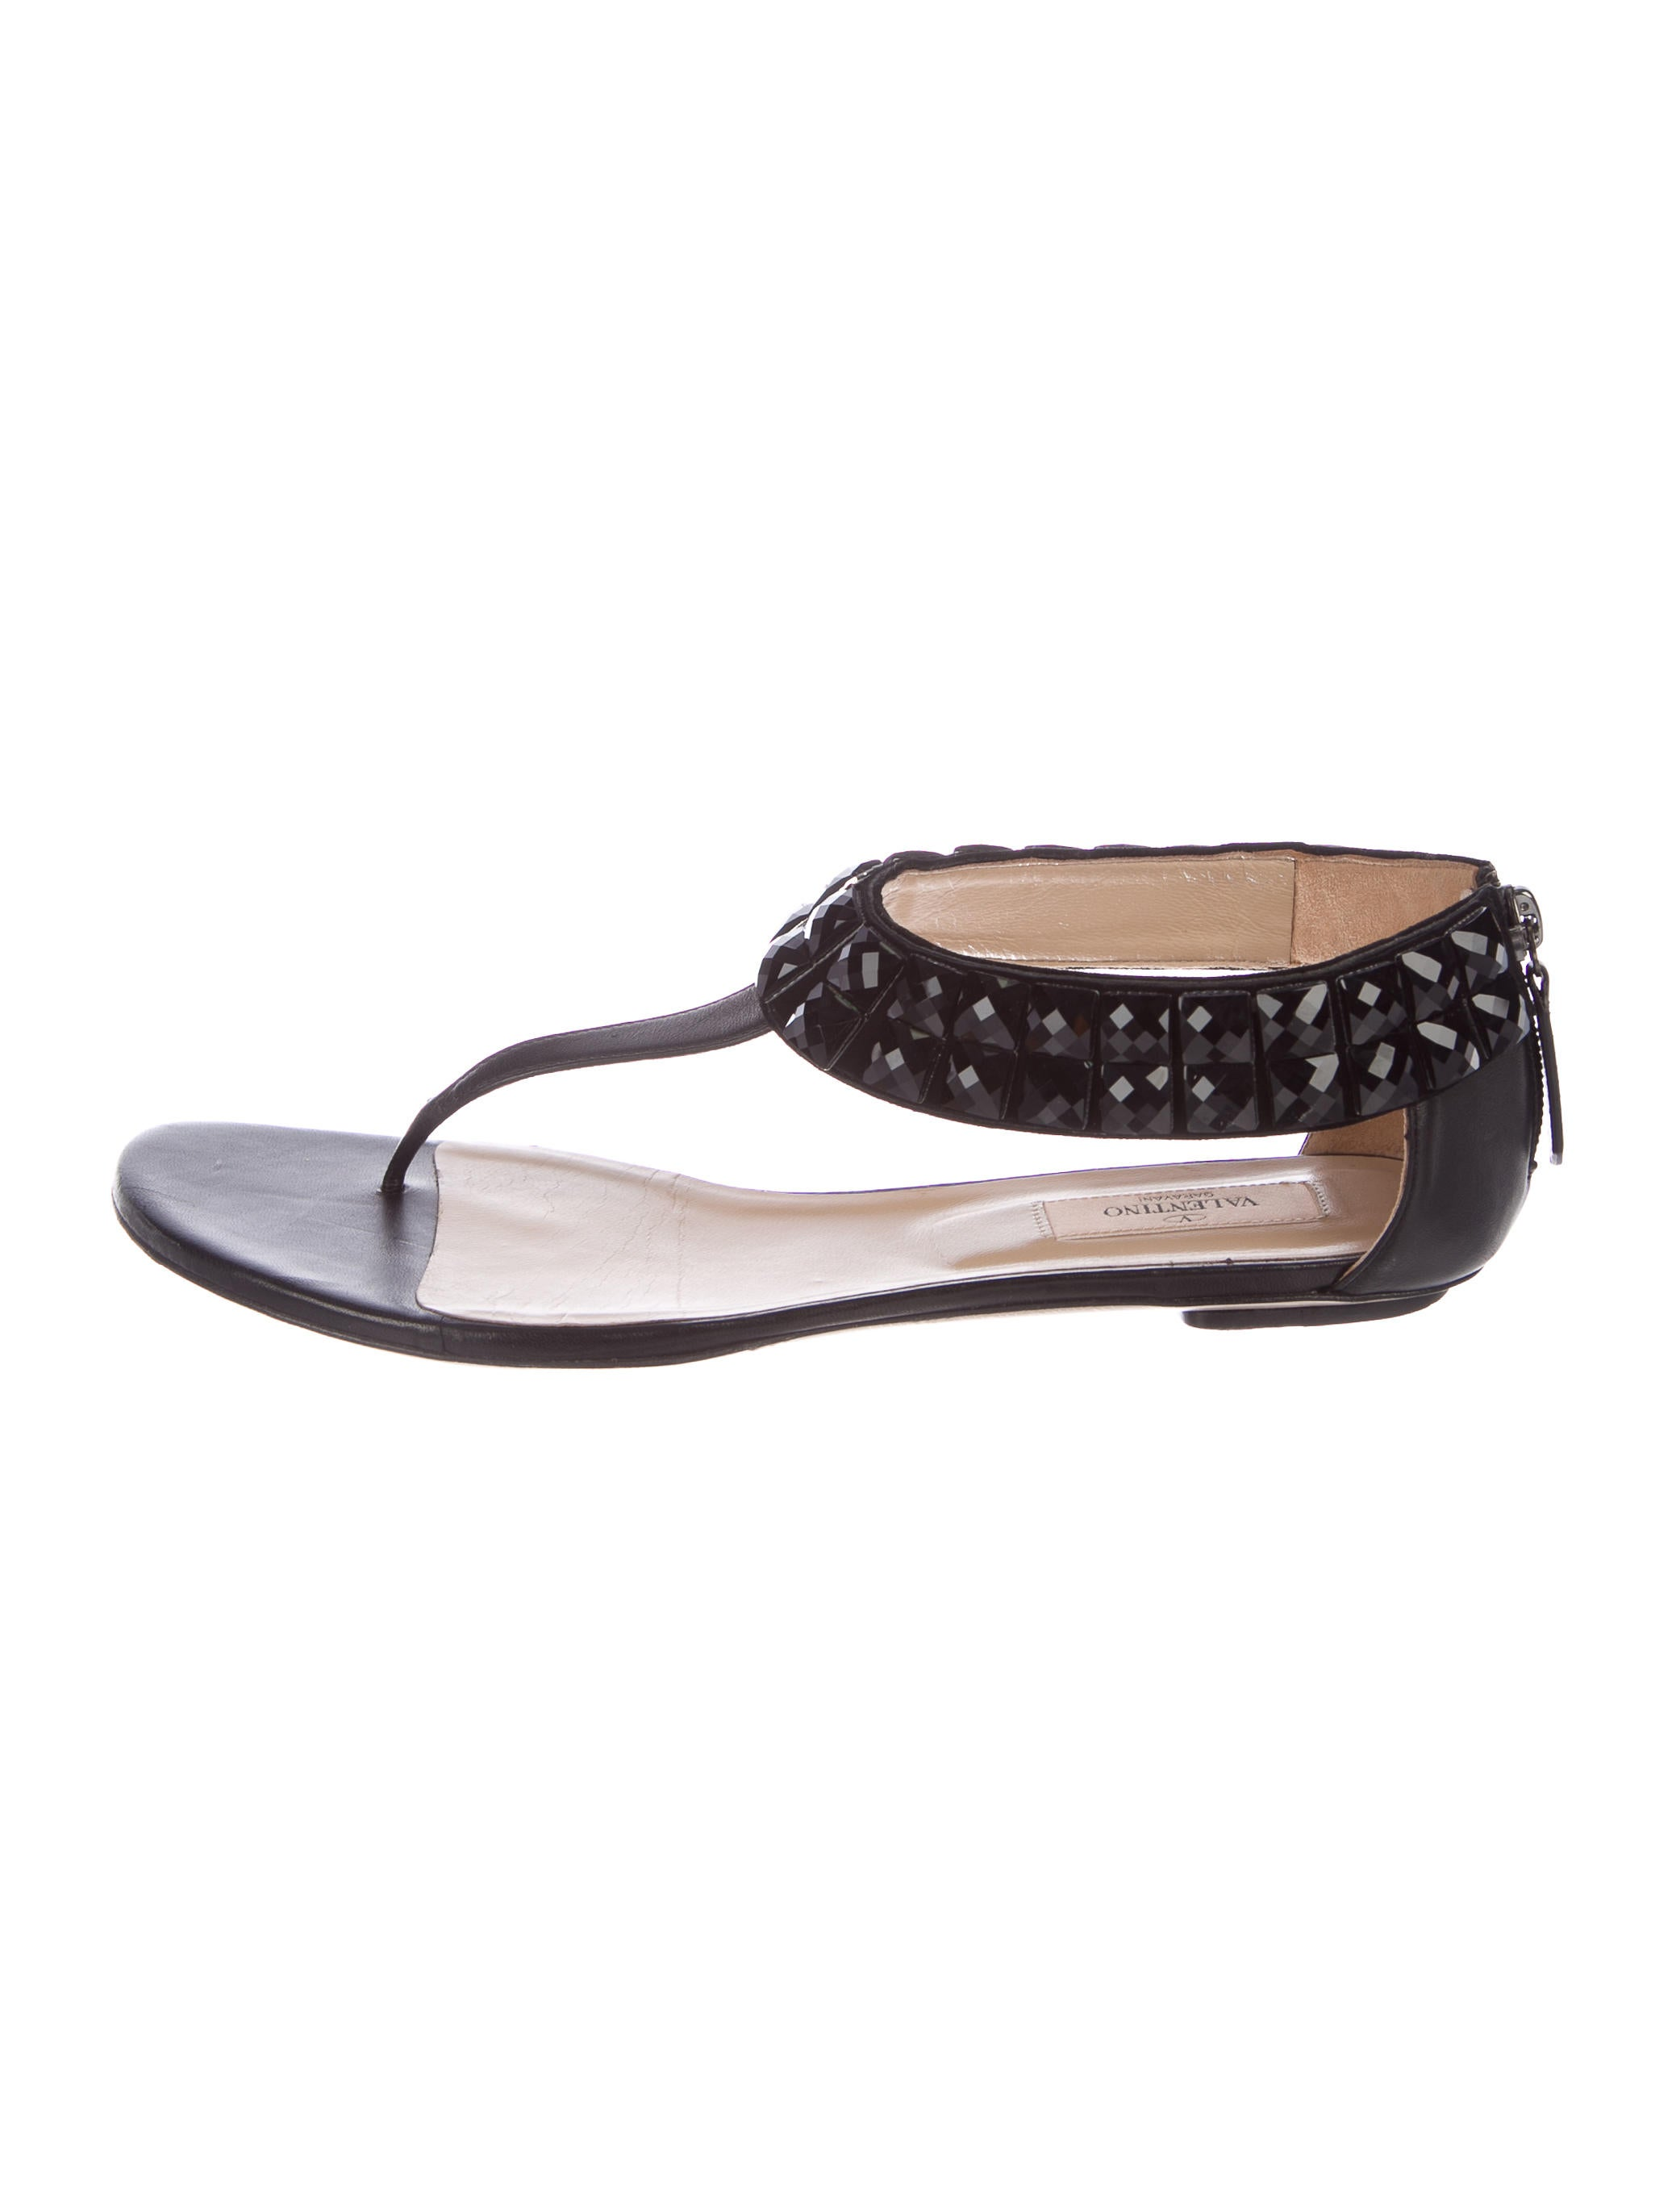 Valentino Jewel-Embellished Thong Sandals buy cheap sale G3vExpFT5